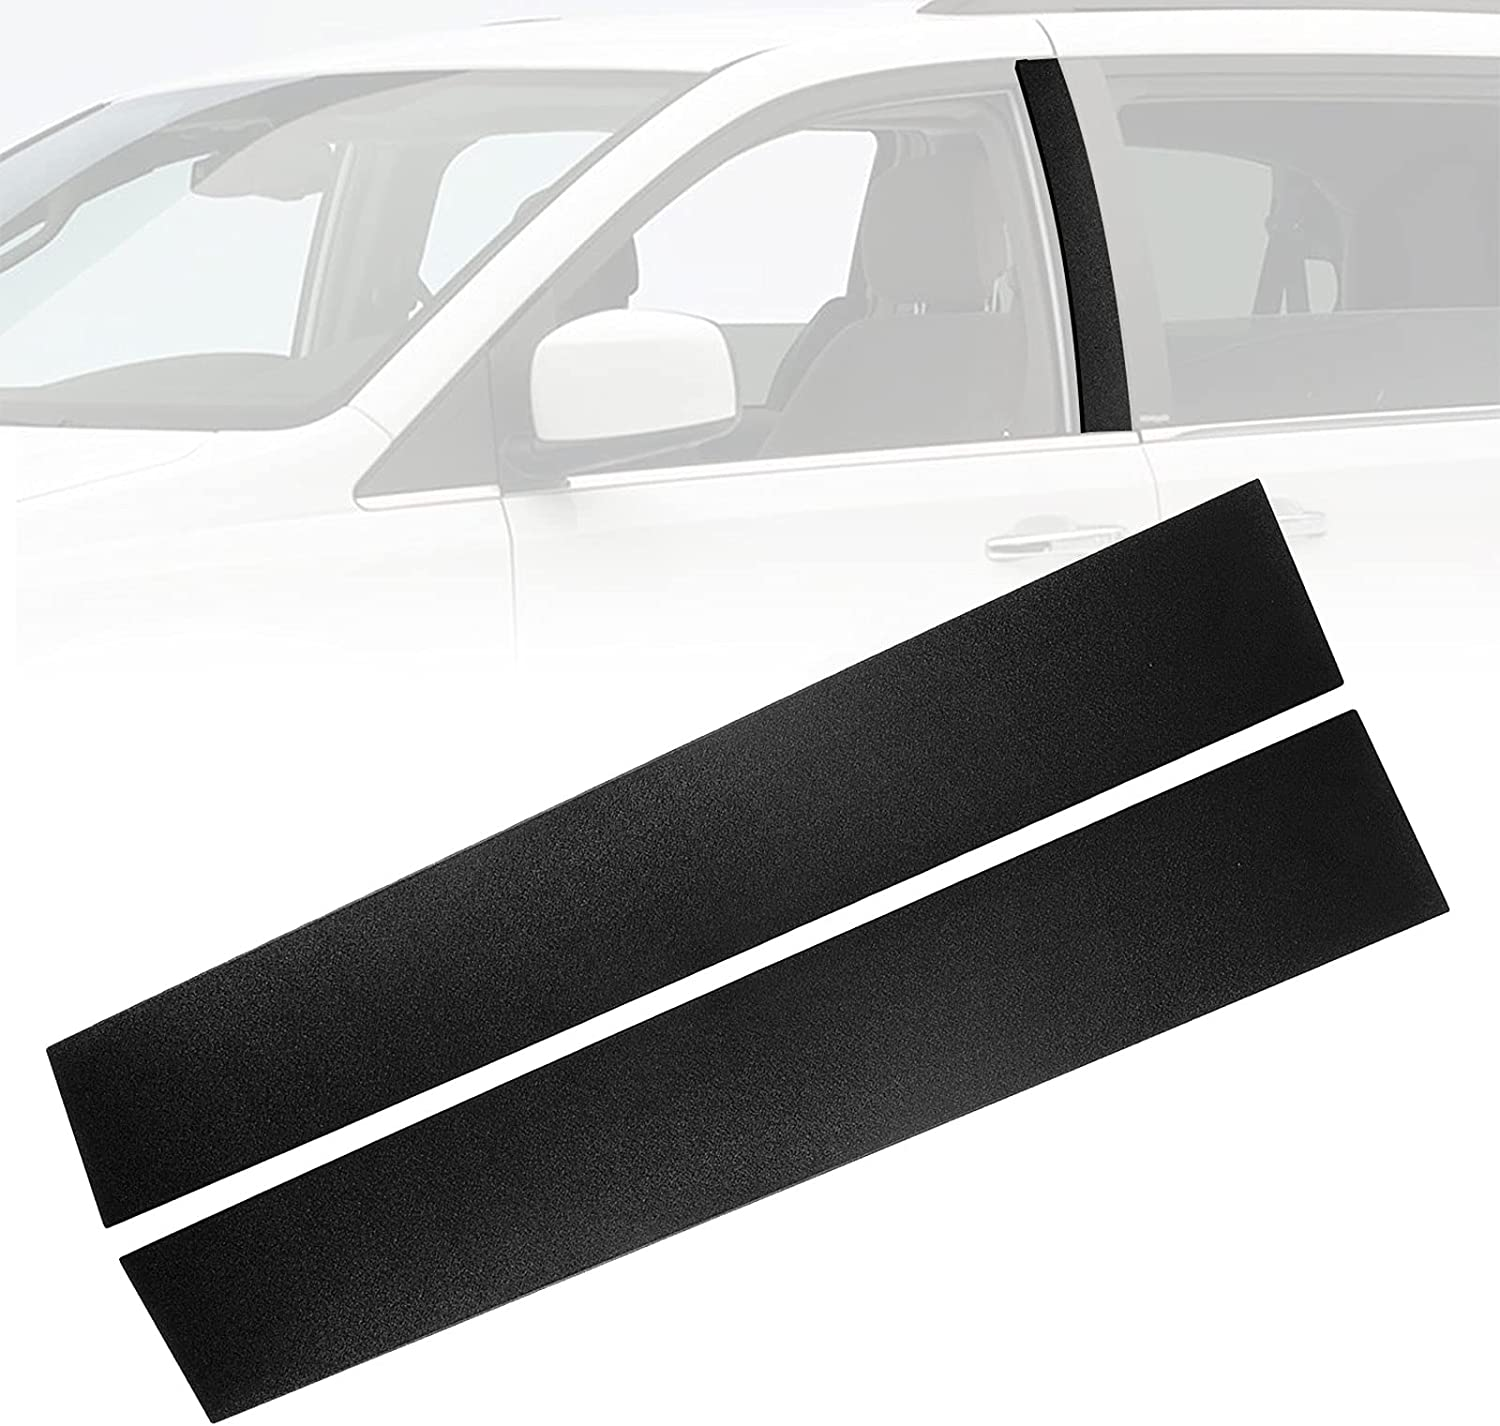 926-445 Driver and Passenger Side Safety and trust B Front Pillar Cover Win Trim Max 43% OFF